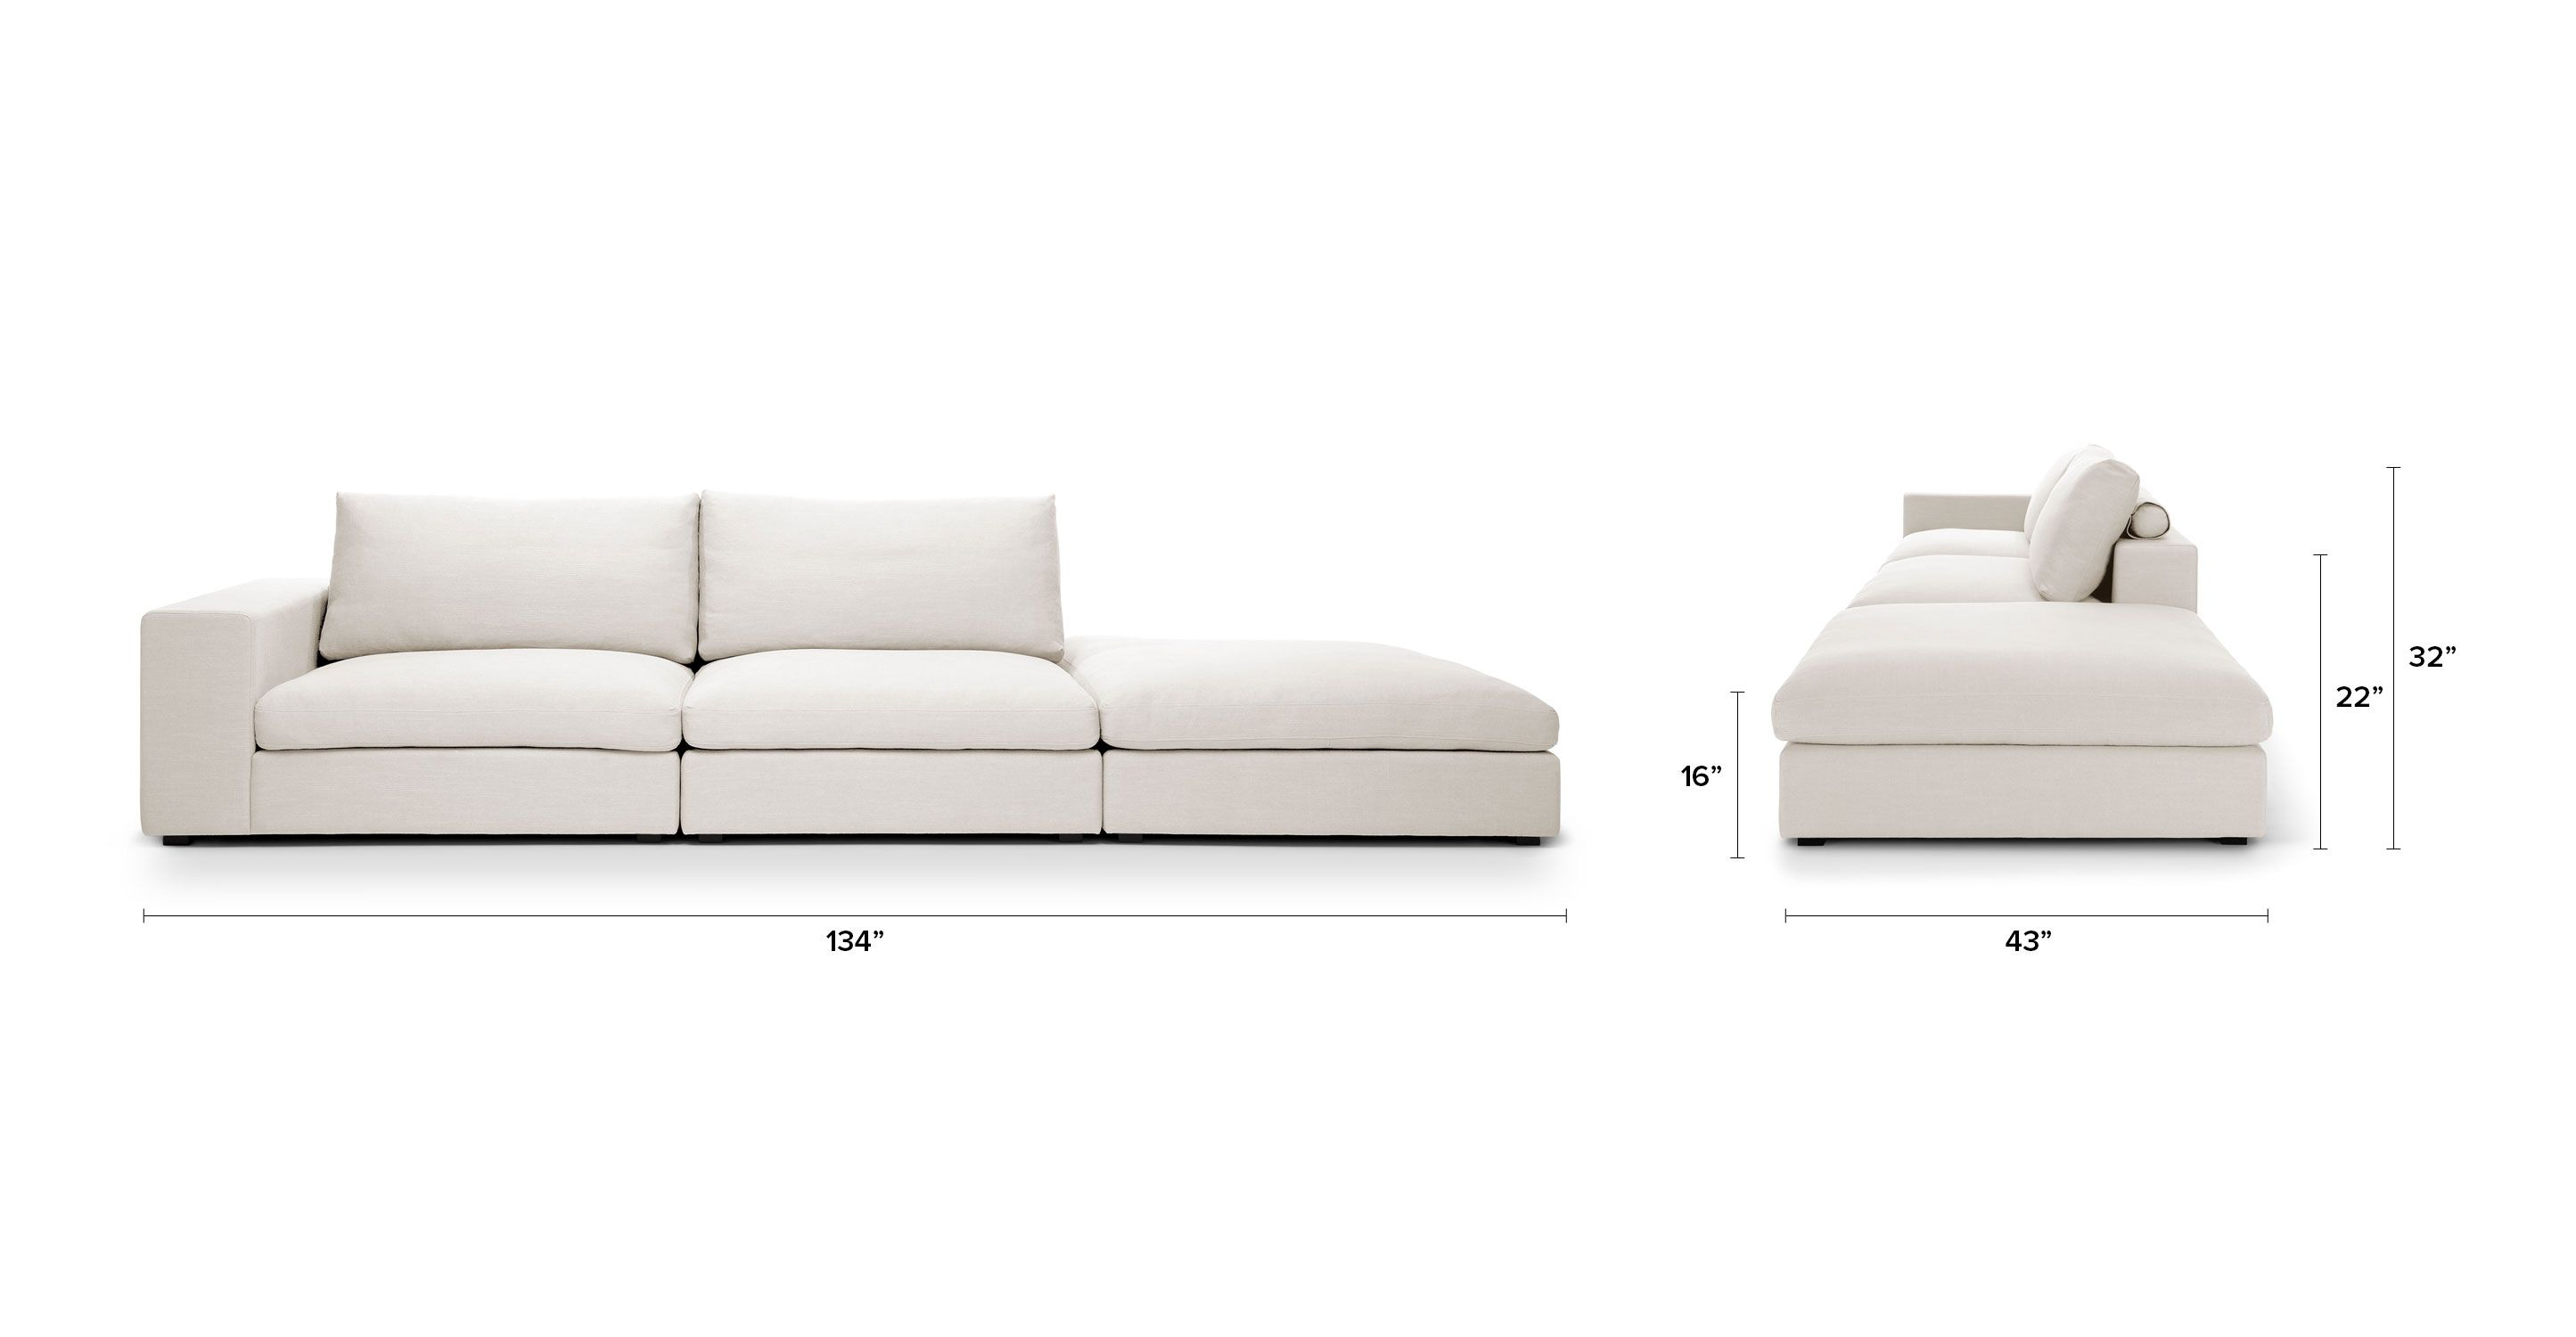 Cube Quartz White Modular Sofa Left Arm Sofas Article Modern Mid Century And Scandinavian Furniture